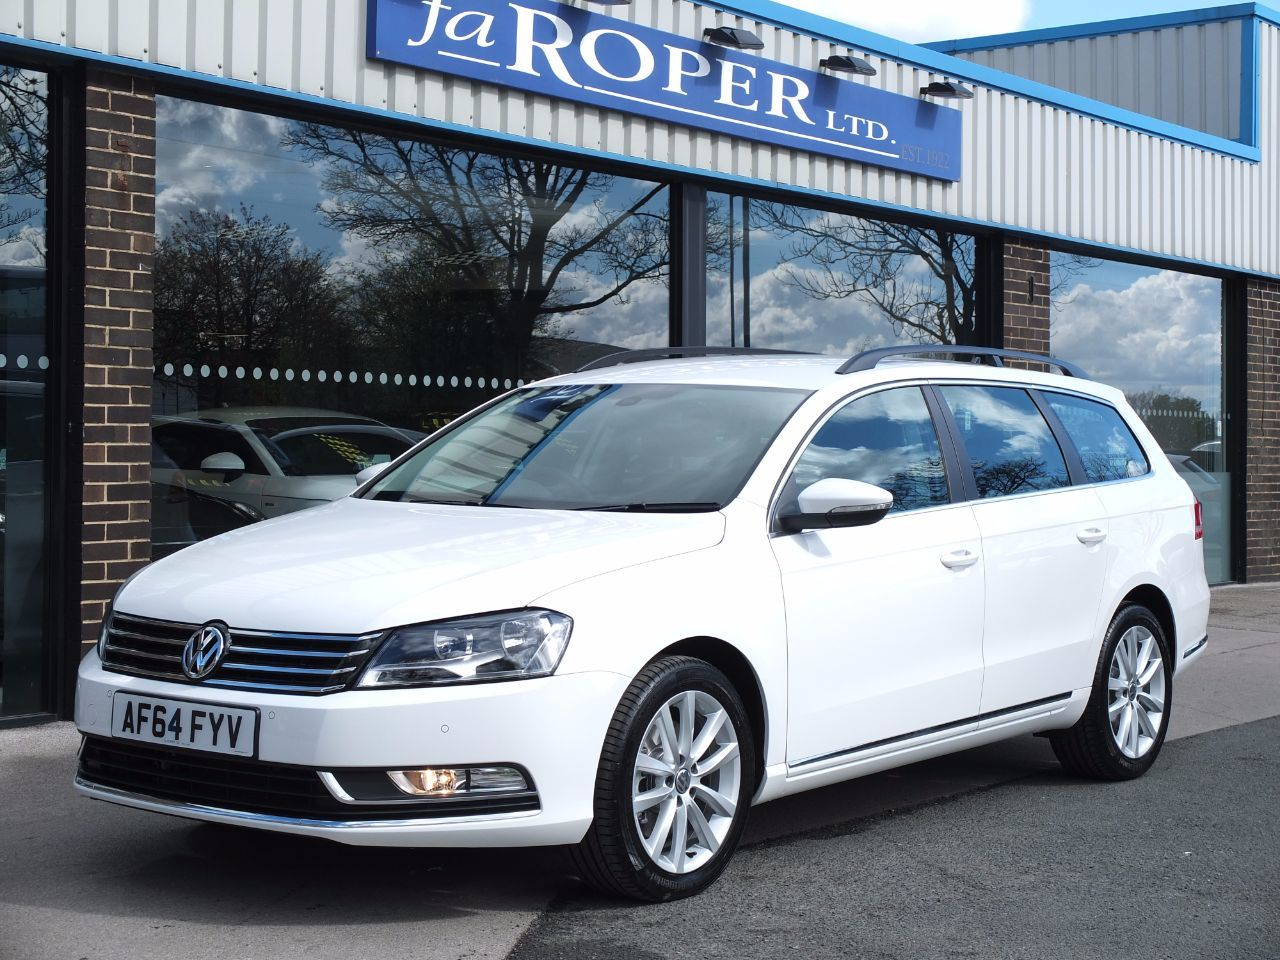 Volkswagen Passat 2.0 TDI Bluemotion Tech Executive Estate 140 ps Estate Diesel Pure WhiteVolkswagen Passat 2.0 TDI Bluemotion Tech Executive Estate 140 ps Estate Diesel Pure White at fa Roper Ltd Bradford